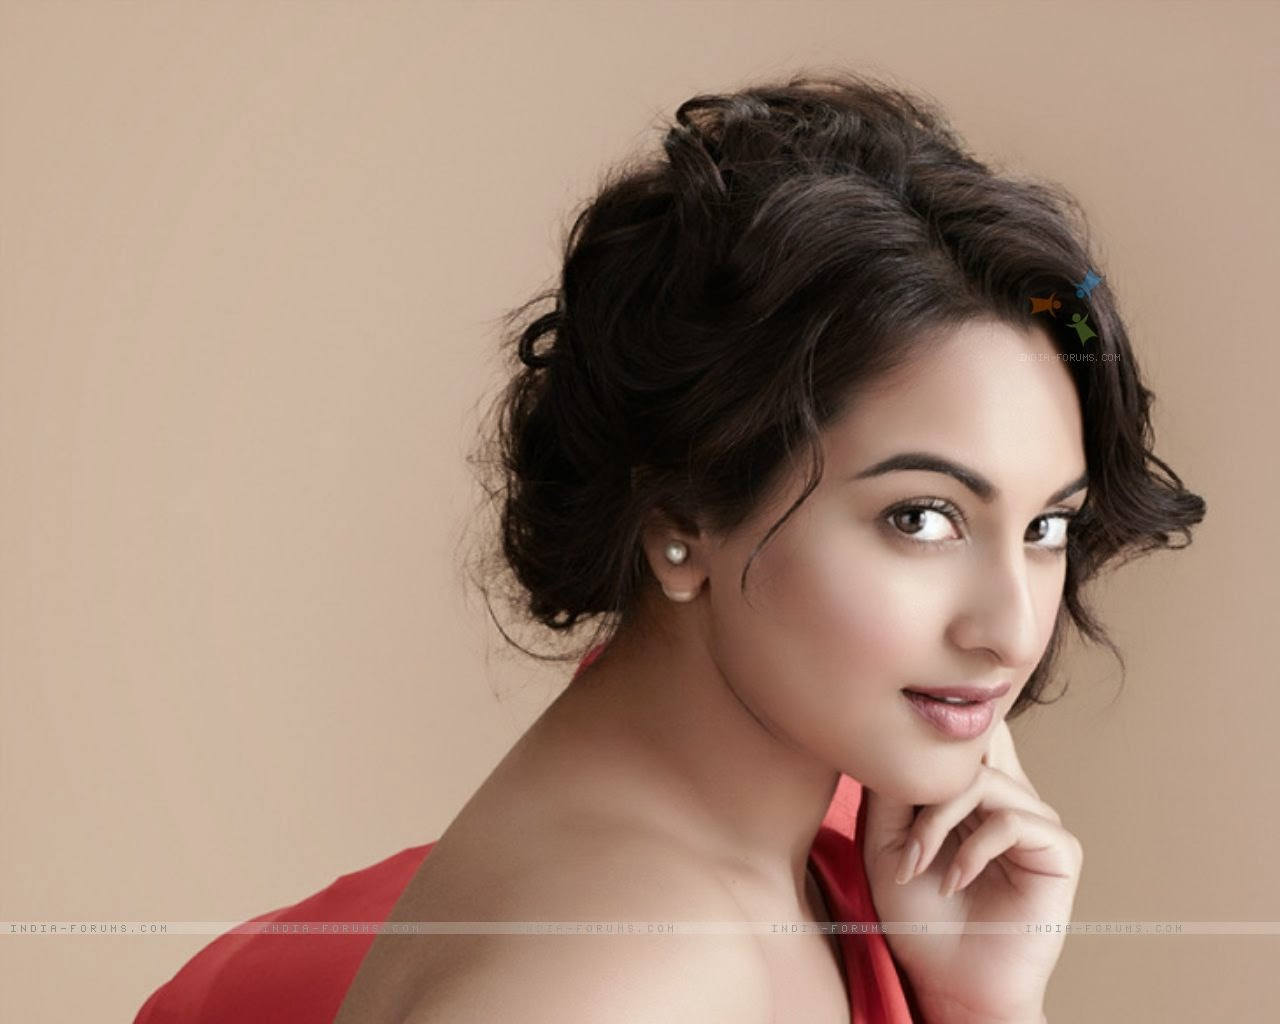 Sonakshi Sinha Birthday today